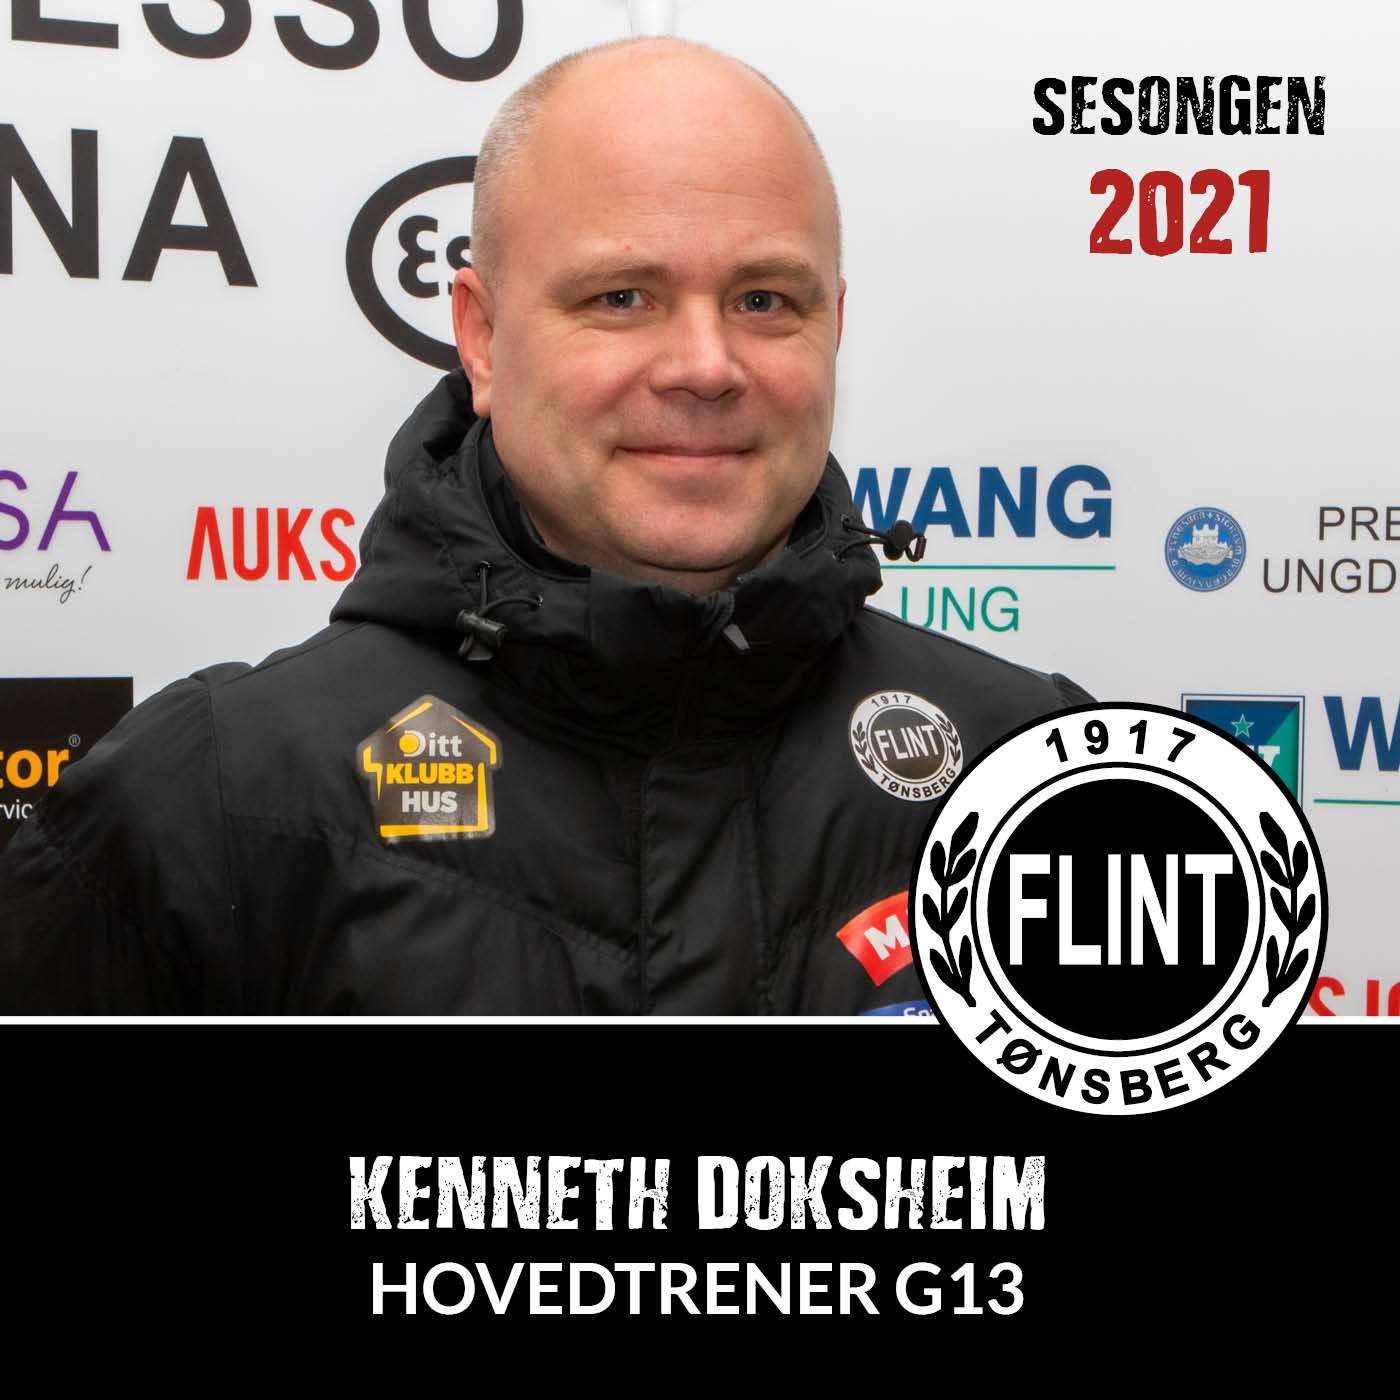 https://www.flintfotball.no/wp-content/uploads/2021/02/Trener-Kenneth-Doksheim.jpg